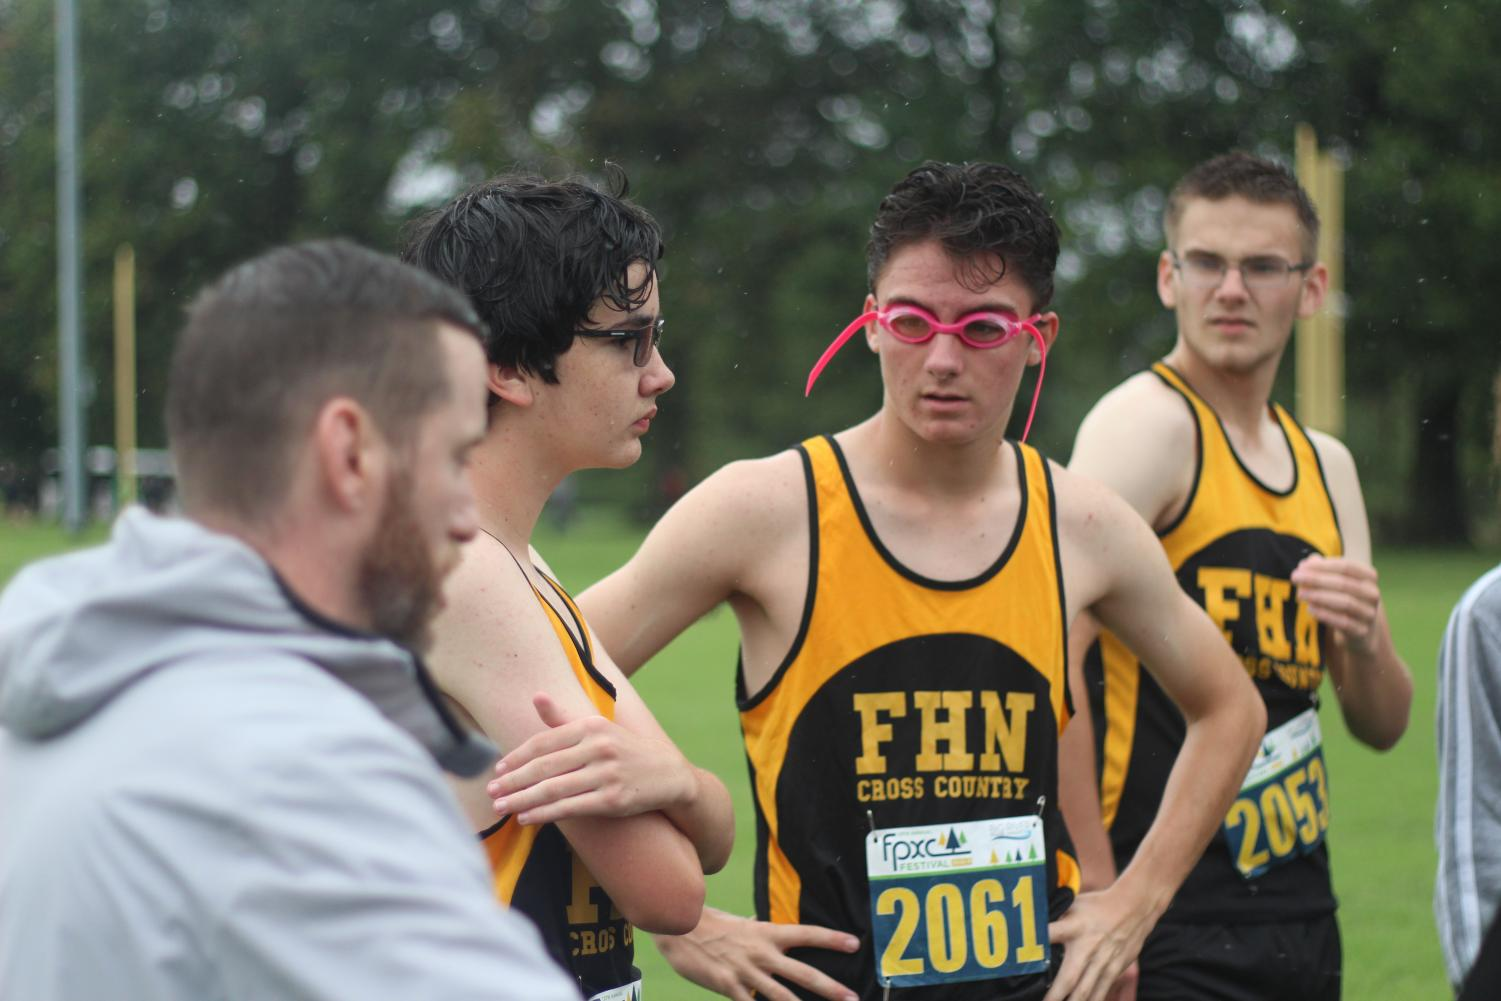 The boys cross country team listen to coach Fowler before running at Forest Park